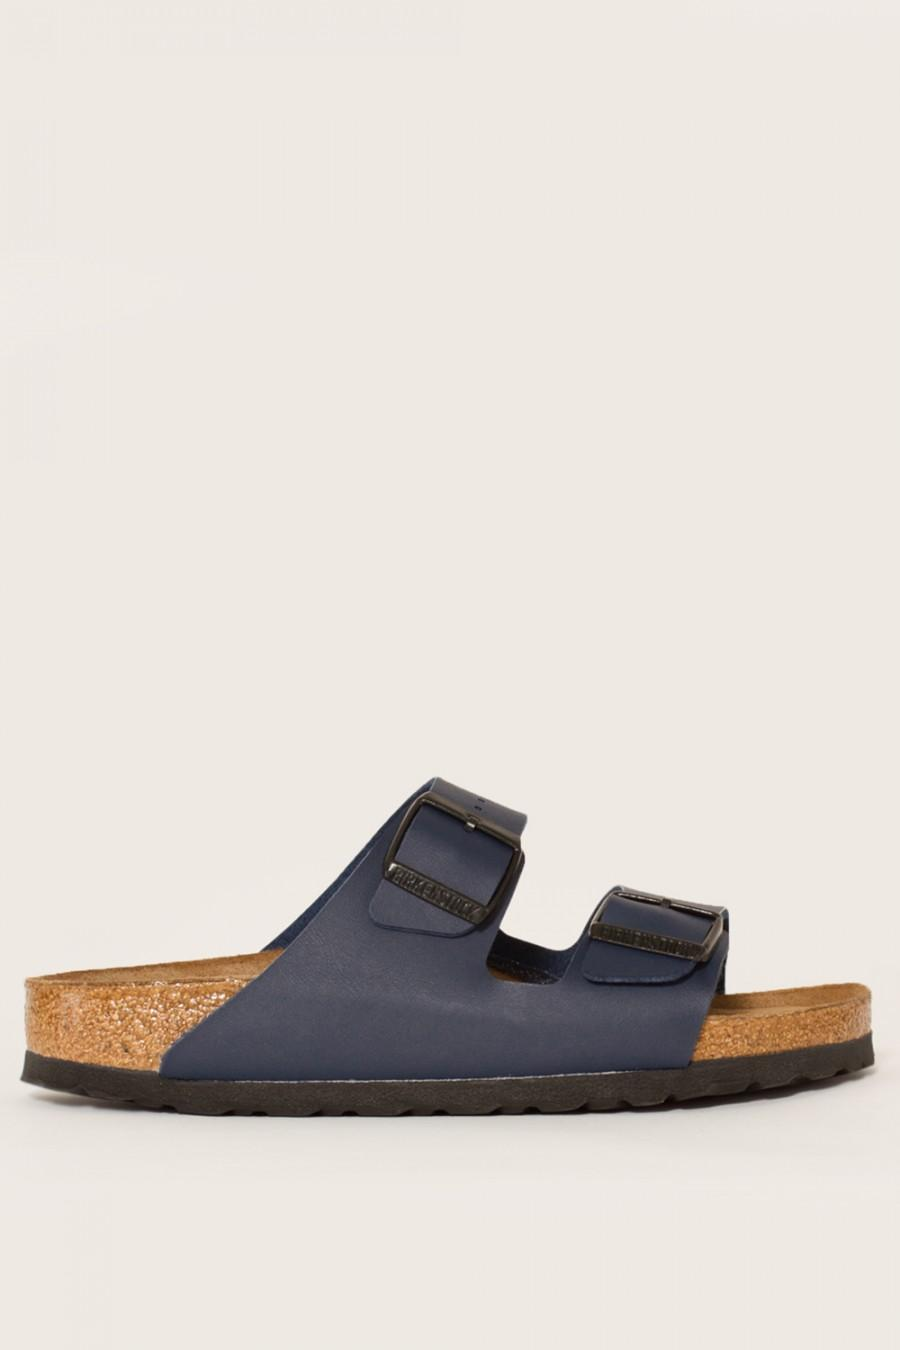 BIRKENSTOCK Arizona Sandals at MADISON LOS ANGELES